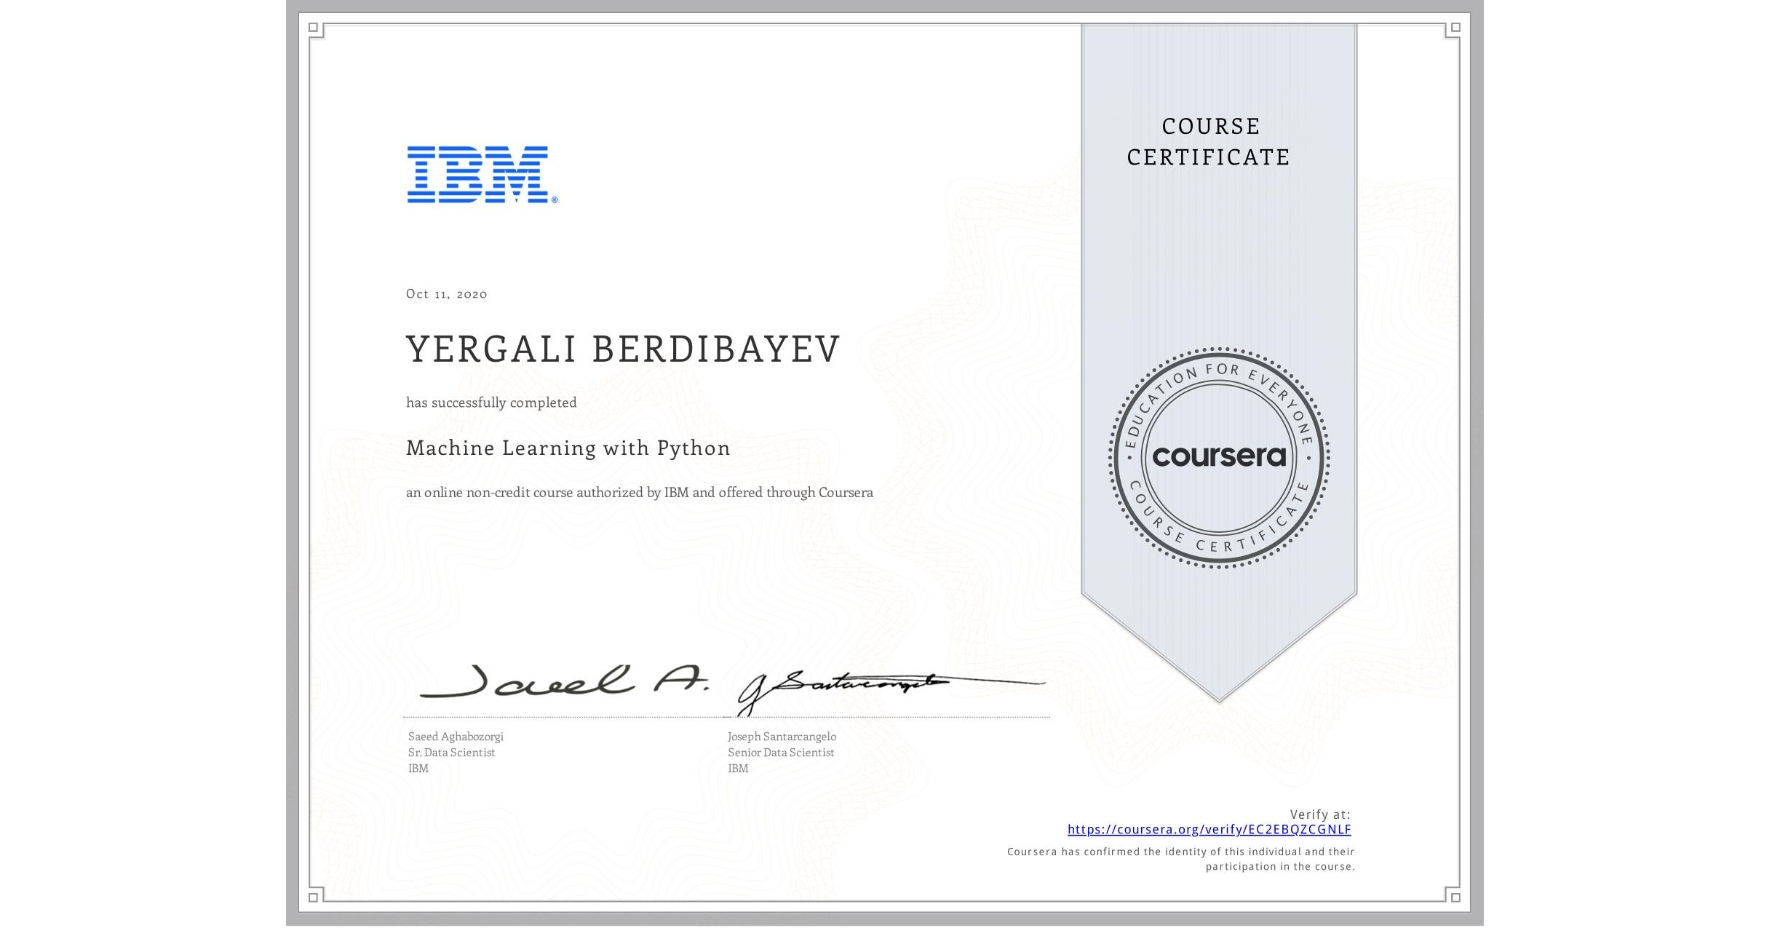 View certificate for Yergali Berdibayev, Machine Learning with Python, an online non-credit course authorized by IBM and offered through Coursera